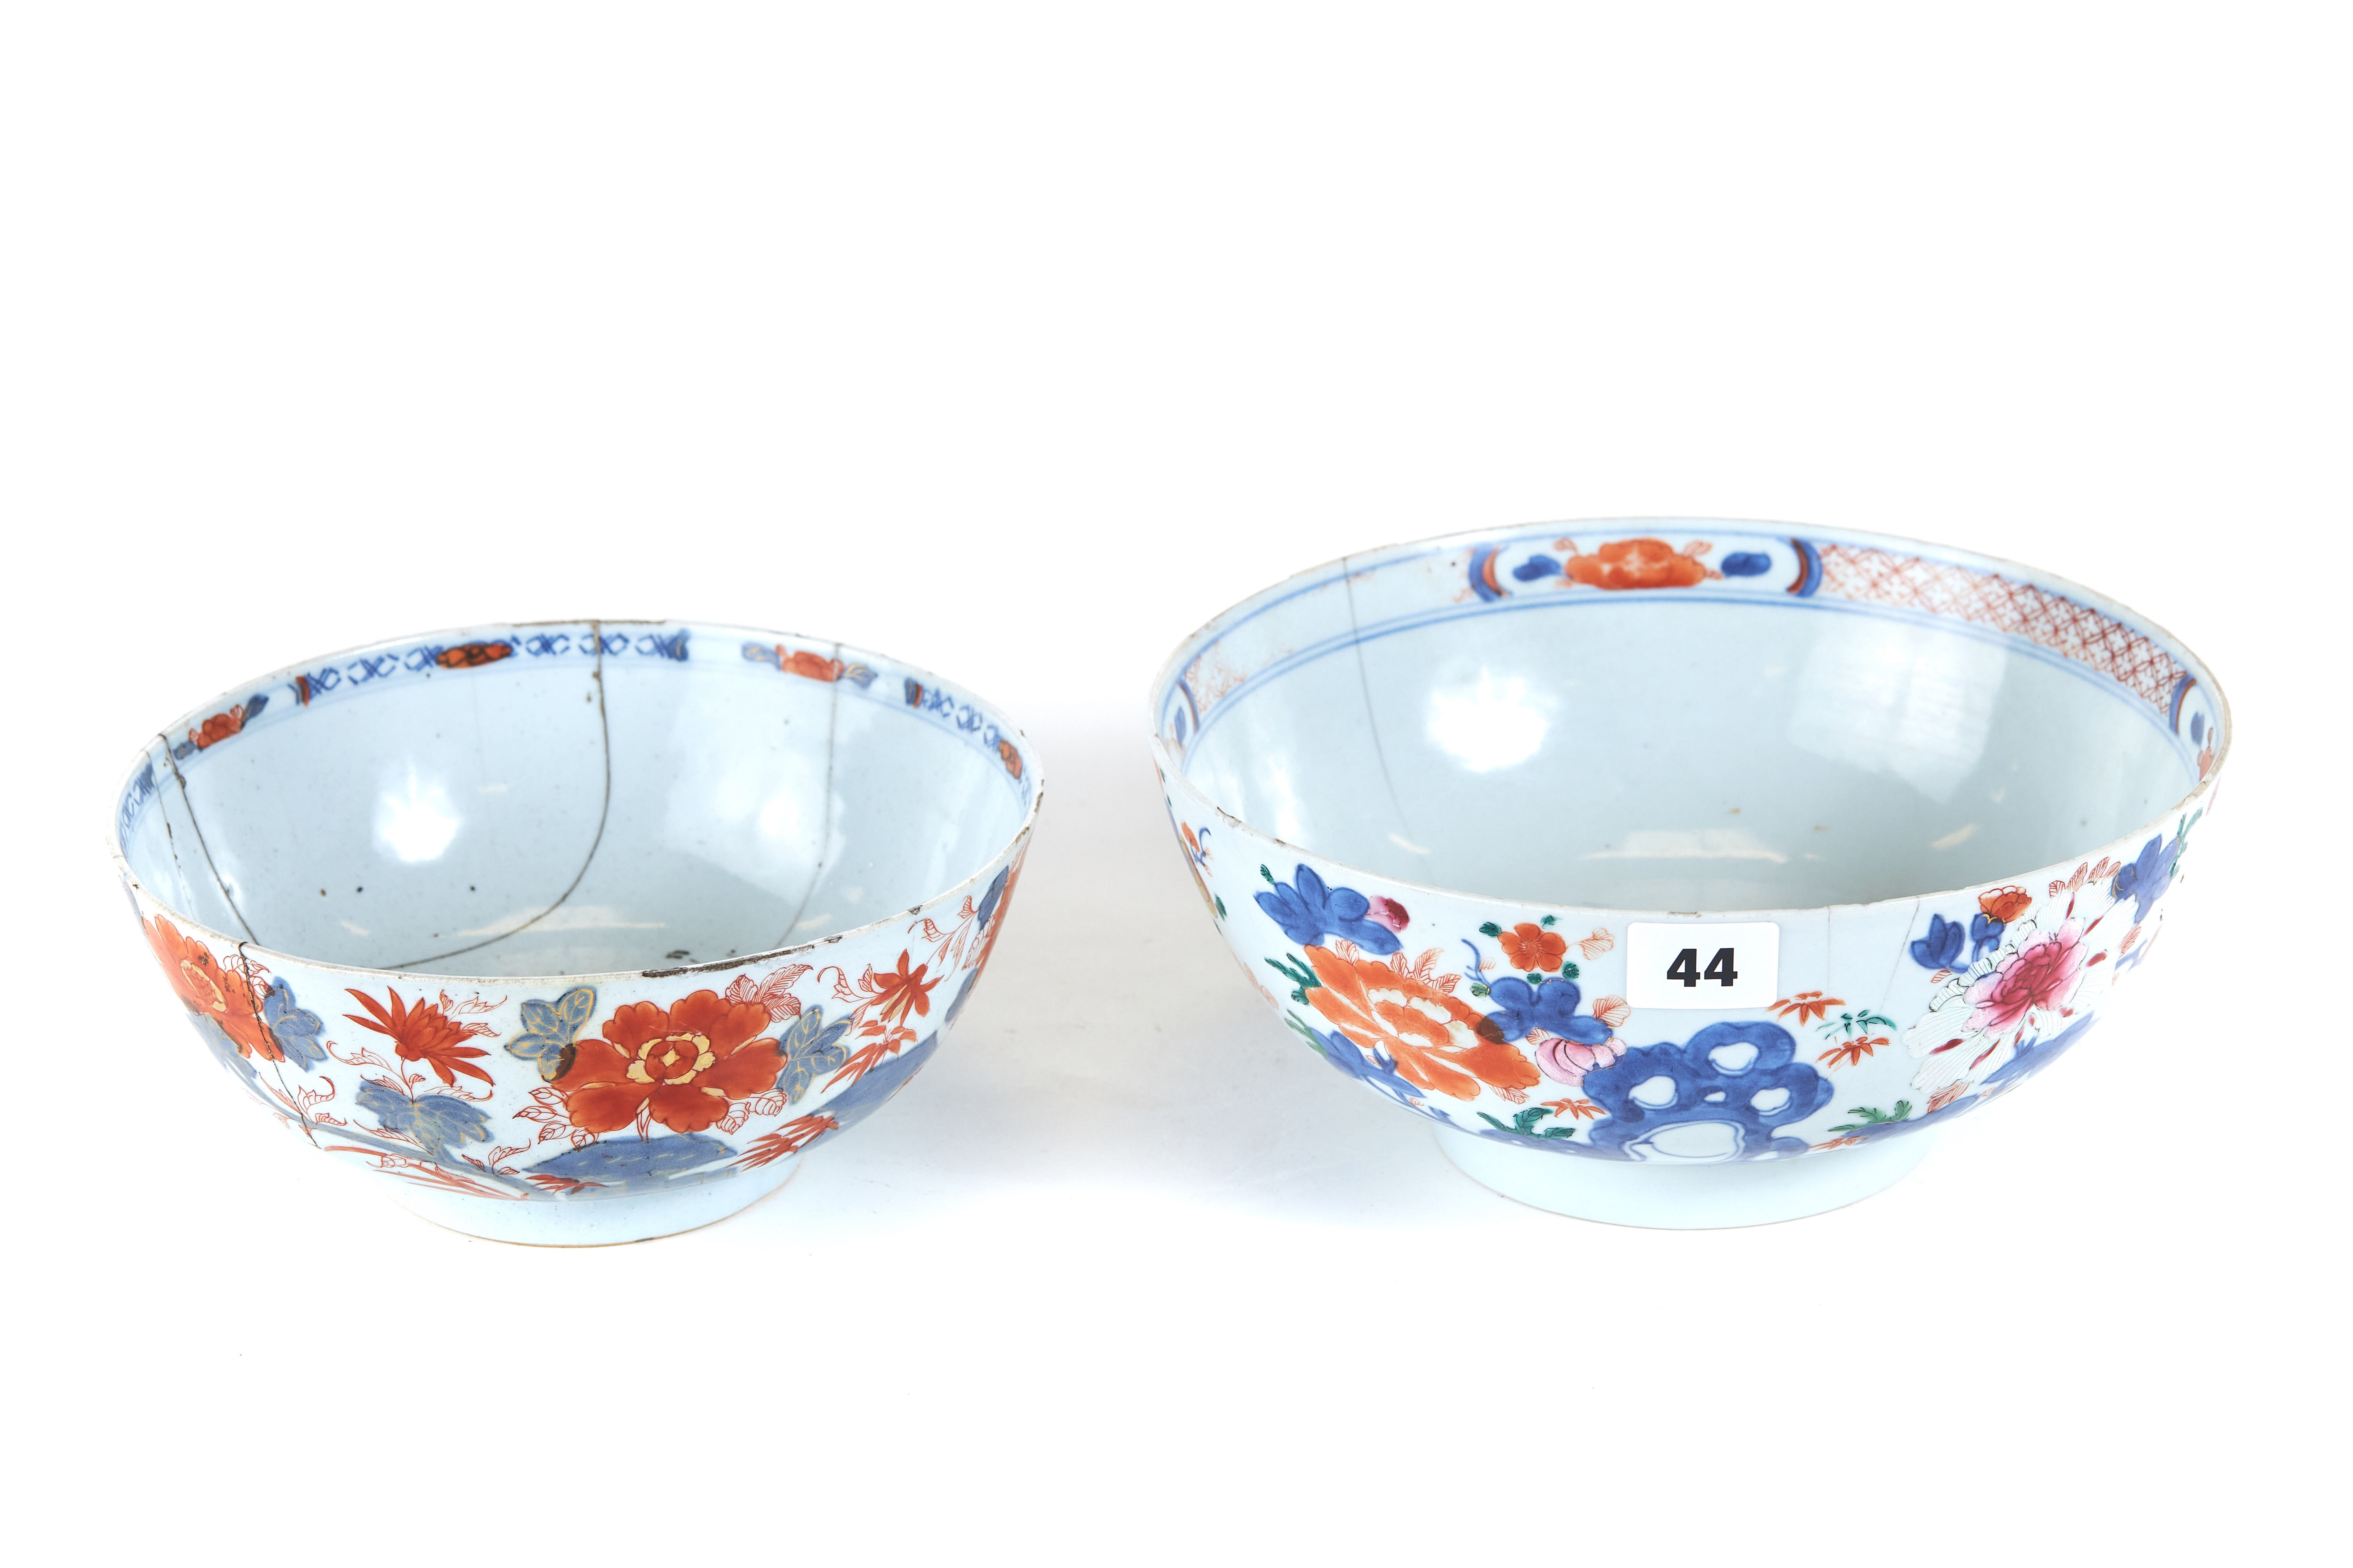 AN 18TH CENTURY CHINESE PORCELAIN BOWL polychrome decorated with leaves and flowers,